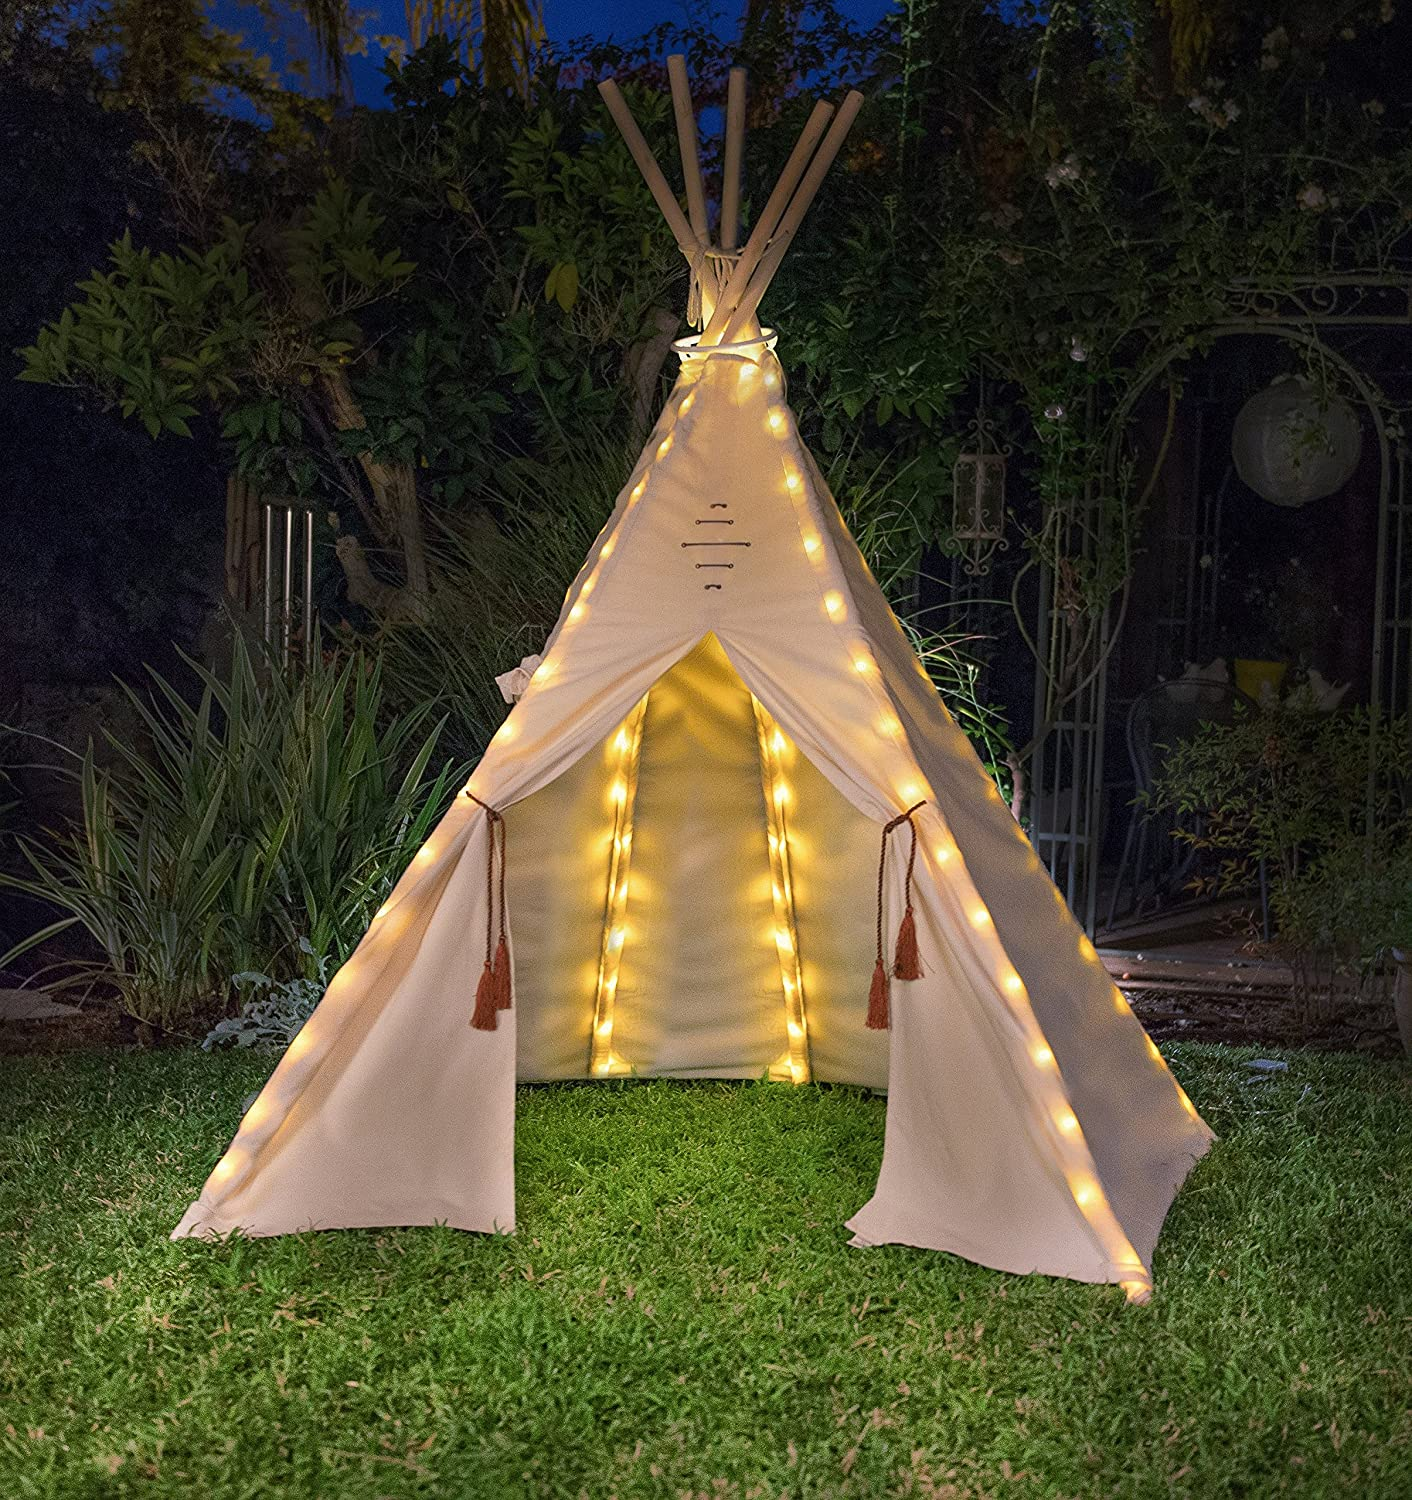 Indoor Outdoor Kids Tent Playhouse Teepee Lights Led Bulbs